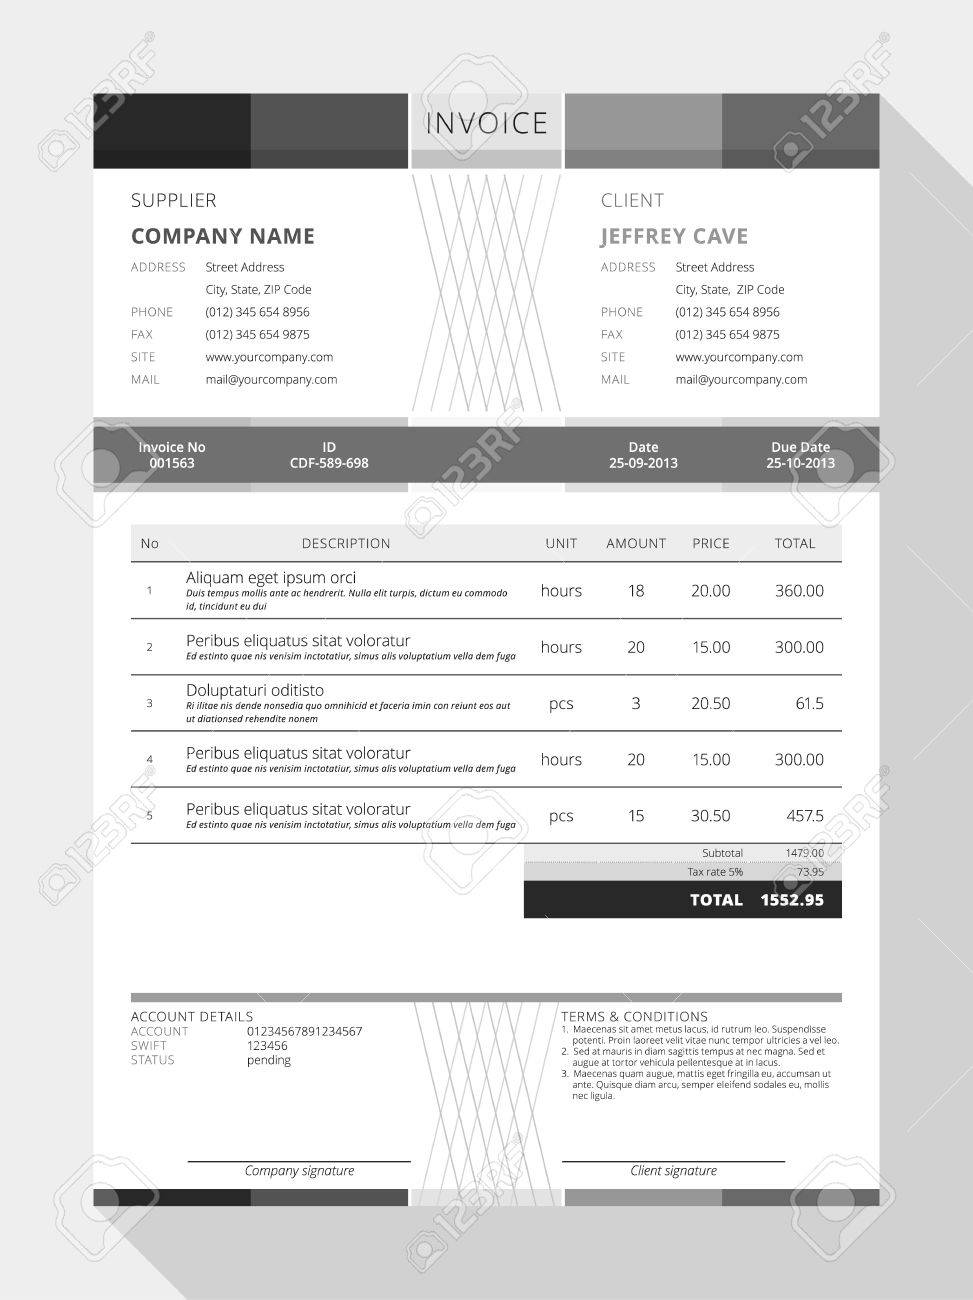 Thassosus  Marvelous Design An Invoice  Professional Graphic Design Invoice  With Remarkable Vector Customizable Invoice Form Template Design Vector   Design An Invoice With Amazing Download Invoice Template Excel Also Blank Service Invoice Template In Addition Illustration Invoice And Invoicing Services As Well As Mercedes Invoice Price Additionally Proforma Invoice Template Excel From Happytomco With Thassosus  Remarkable Design An Invoice  Professional Graphic Design Invoice  With Amazing Vector Customizable Invoice Form Template Design Vector   Design An Invoice And Marvelous Download Invoice Template Excel Also Blank Service Invoice Template In Addition Illustration Invoice From Happytomco